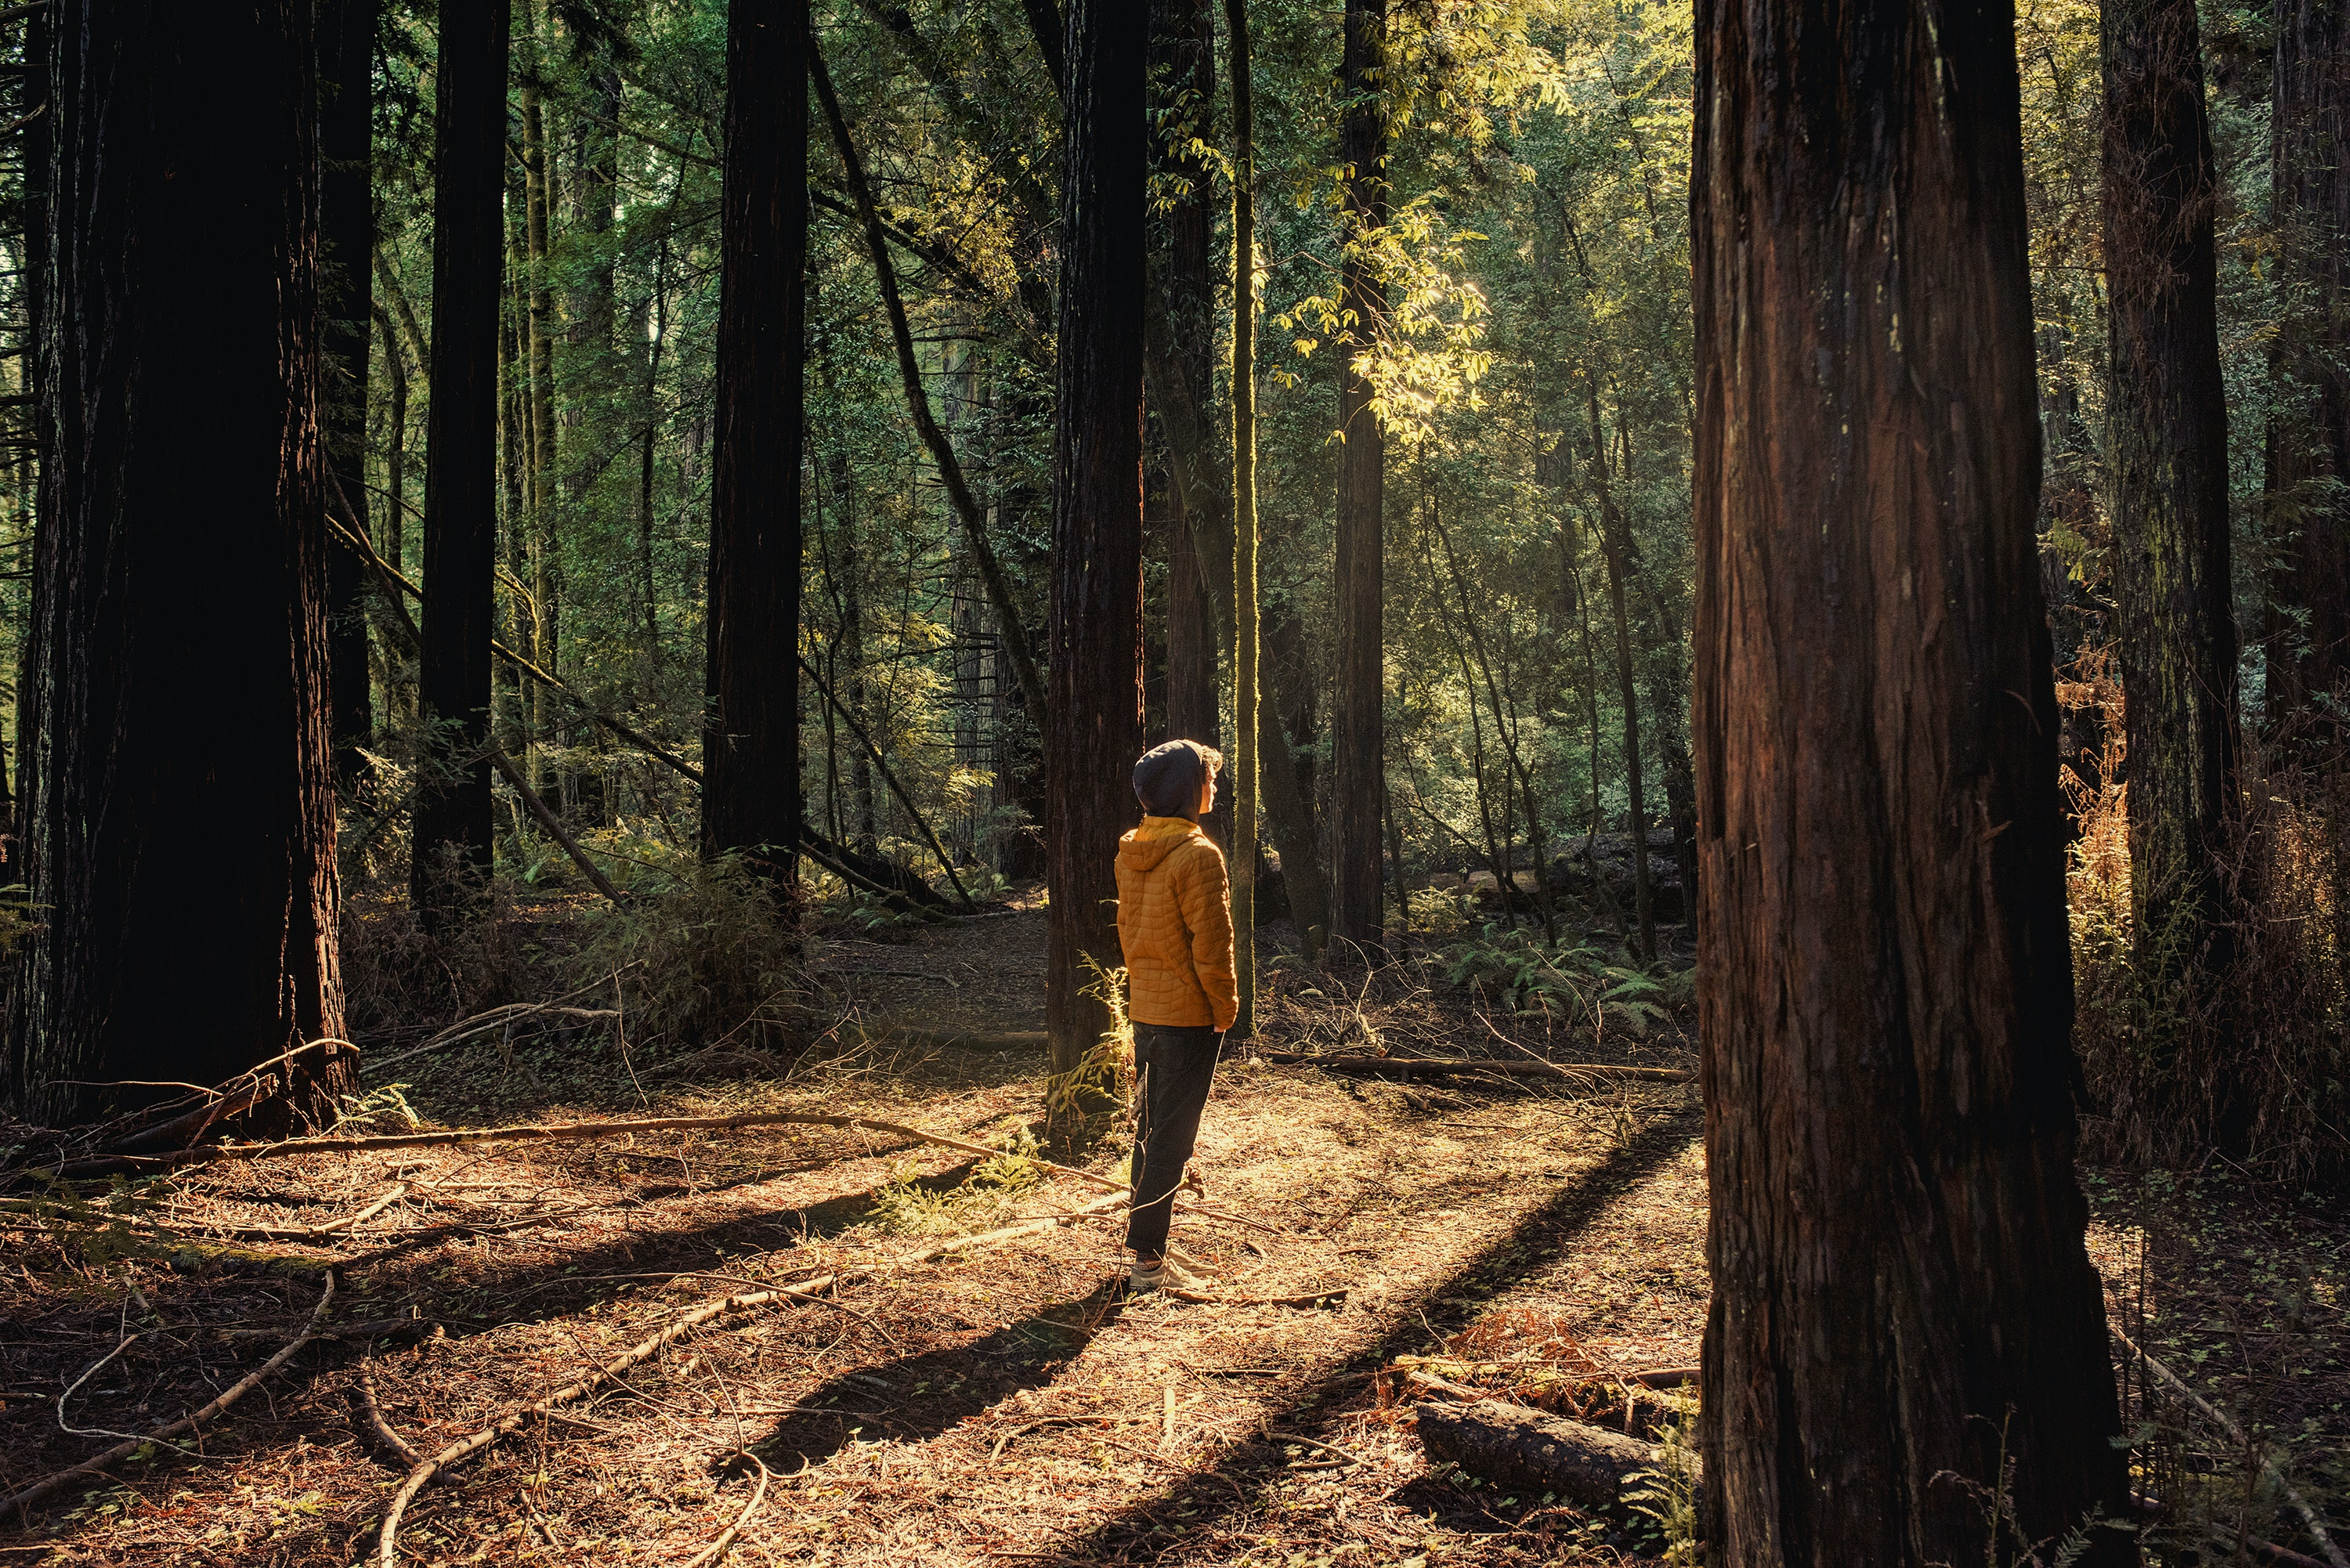 Hendy Woods State Park spans 816 acres and includes two old-growth redwood groves.